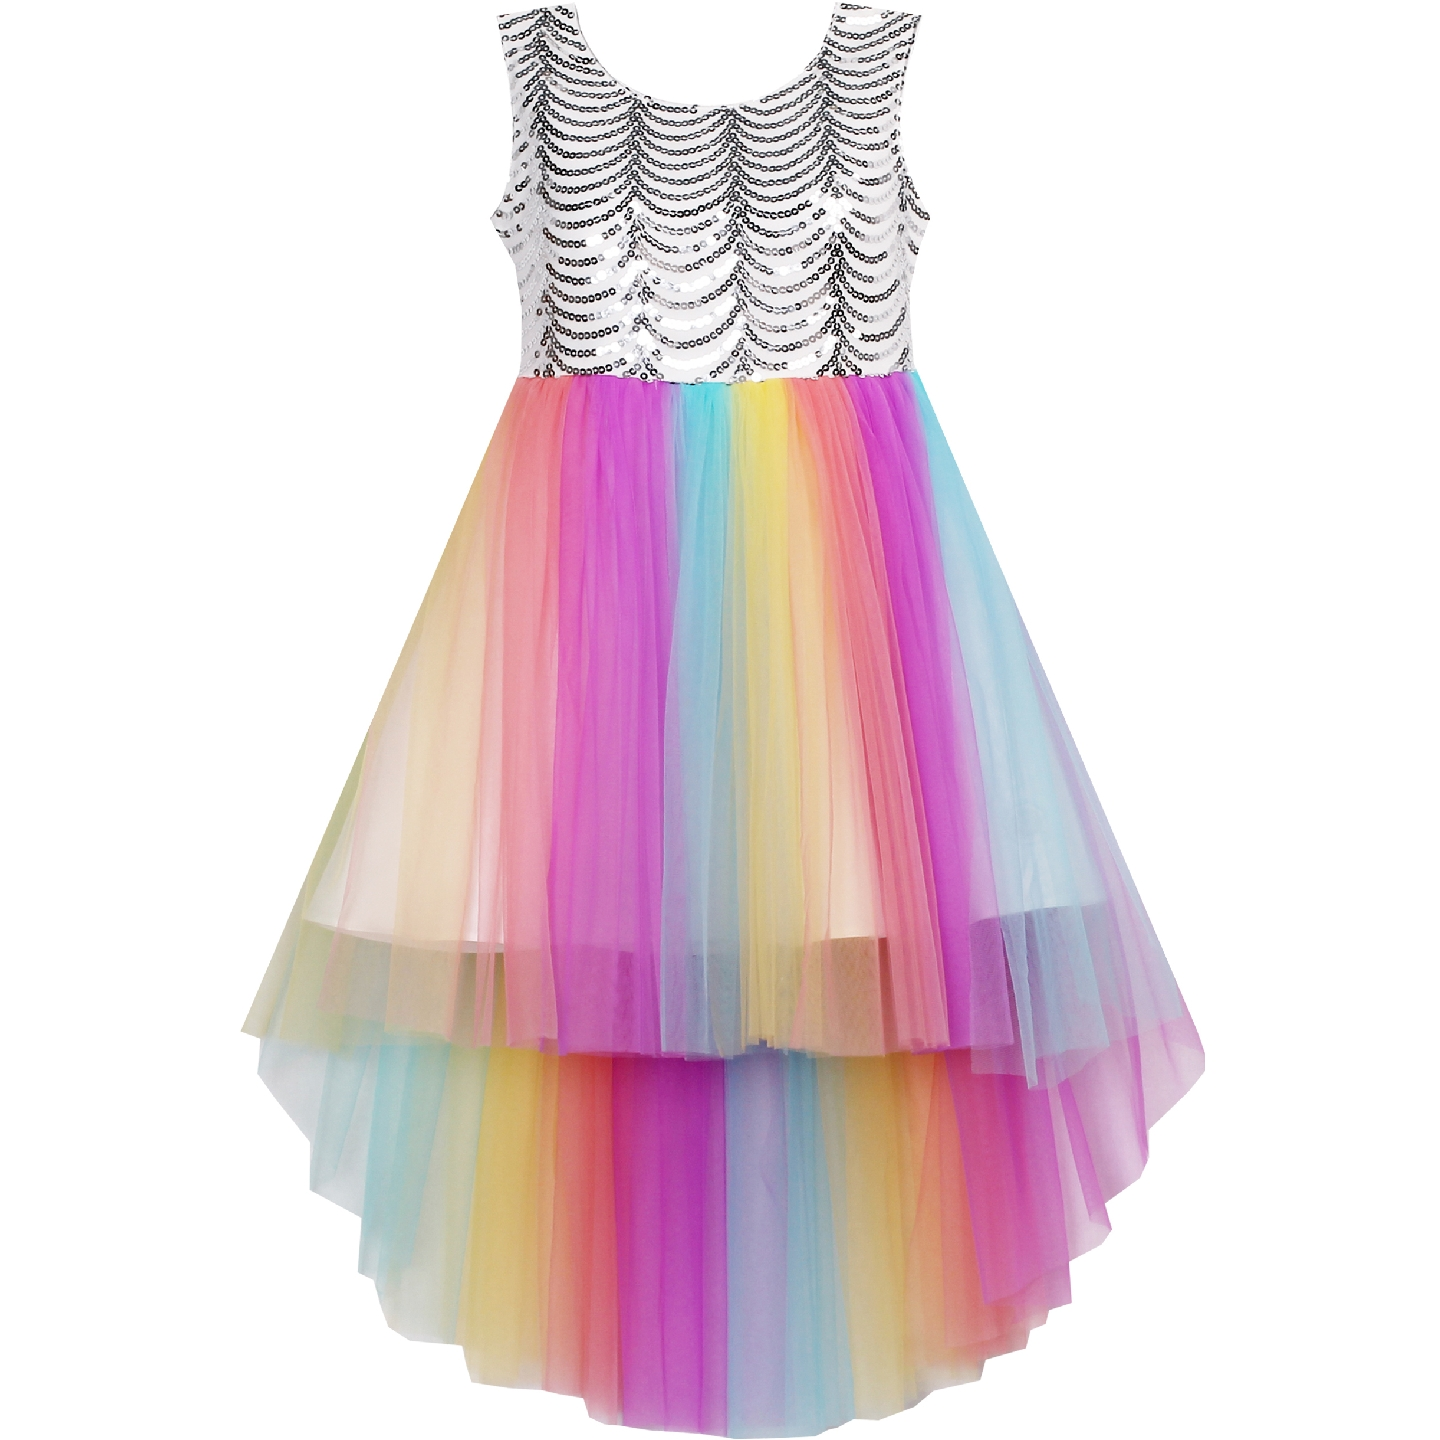 Flower Girl Dress Sequin Mesh Party Wedding Princess Tulle 2019 Summer Dresses Kids Clothes Pageant Sundress Vestidos girls dress blue flower bow tie tulle party princess 2018 summer wedding dresses kids clothes size 4 12 pageant sundress